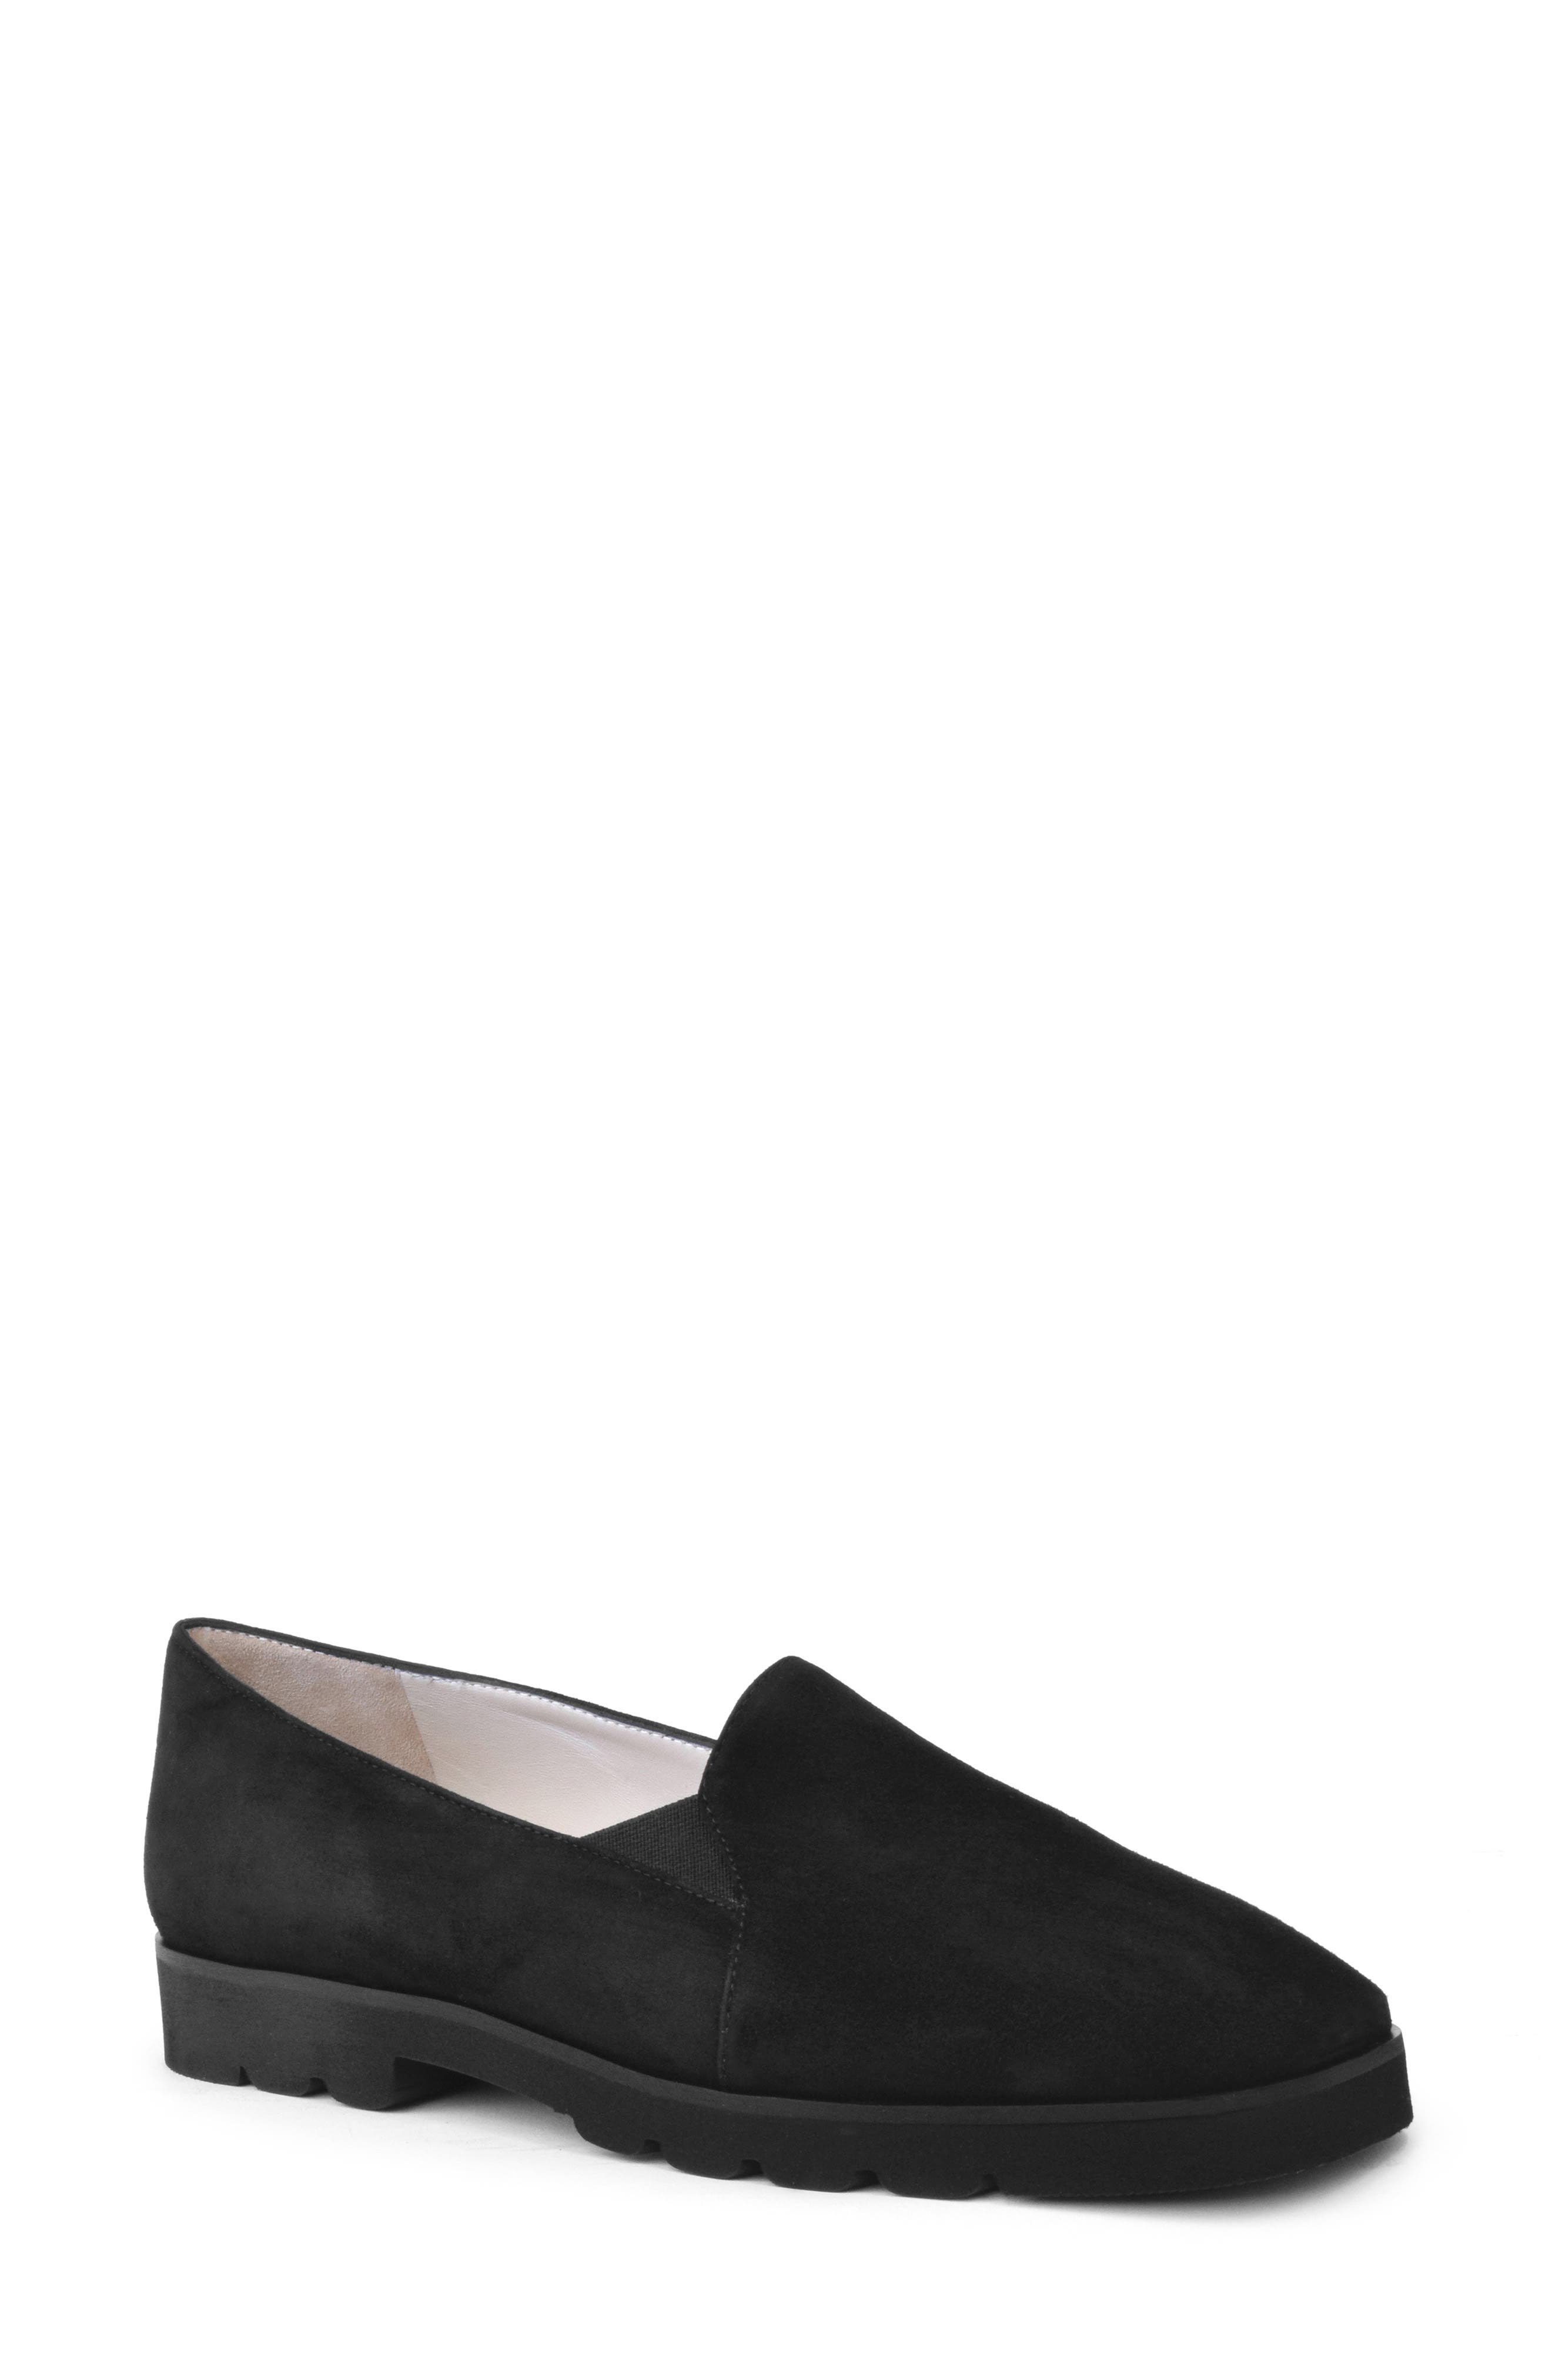 Giostra Loafer